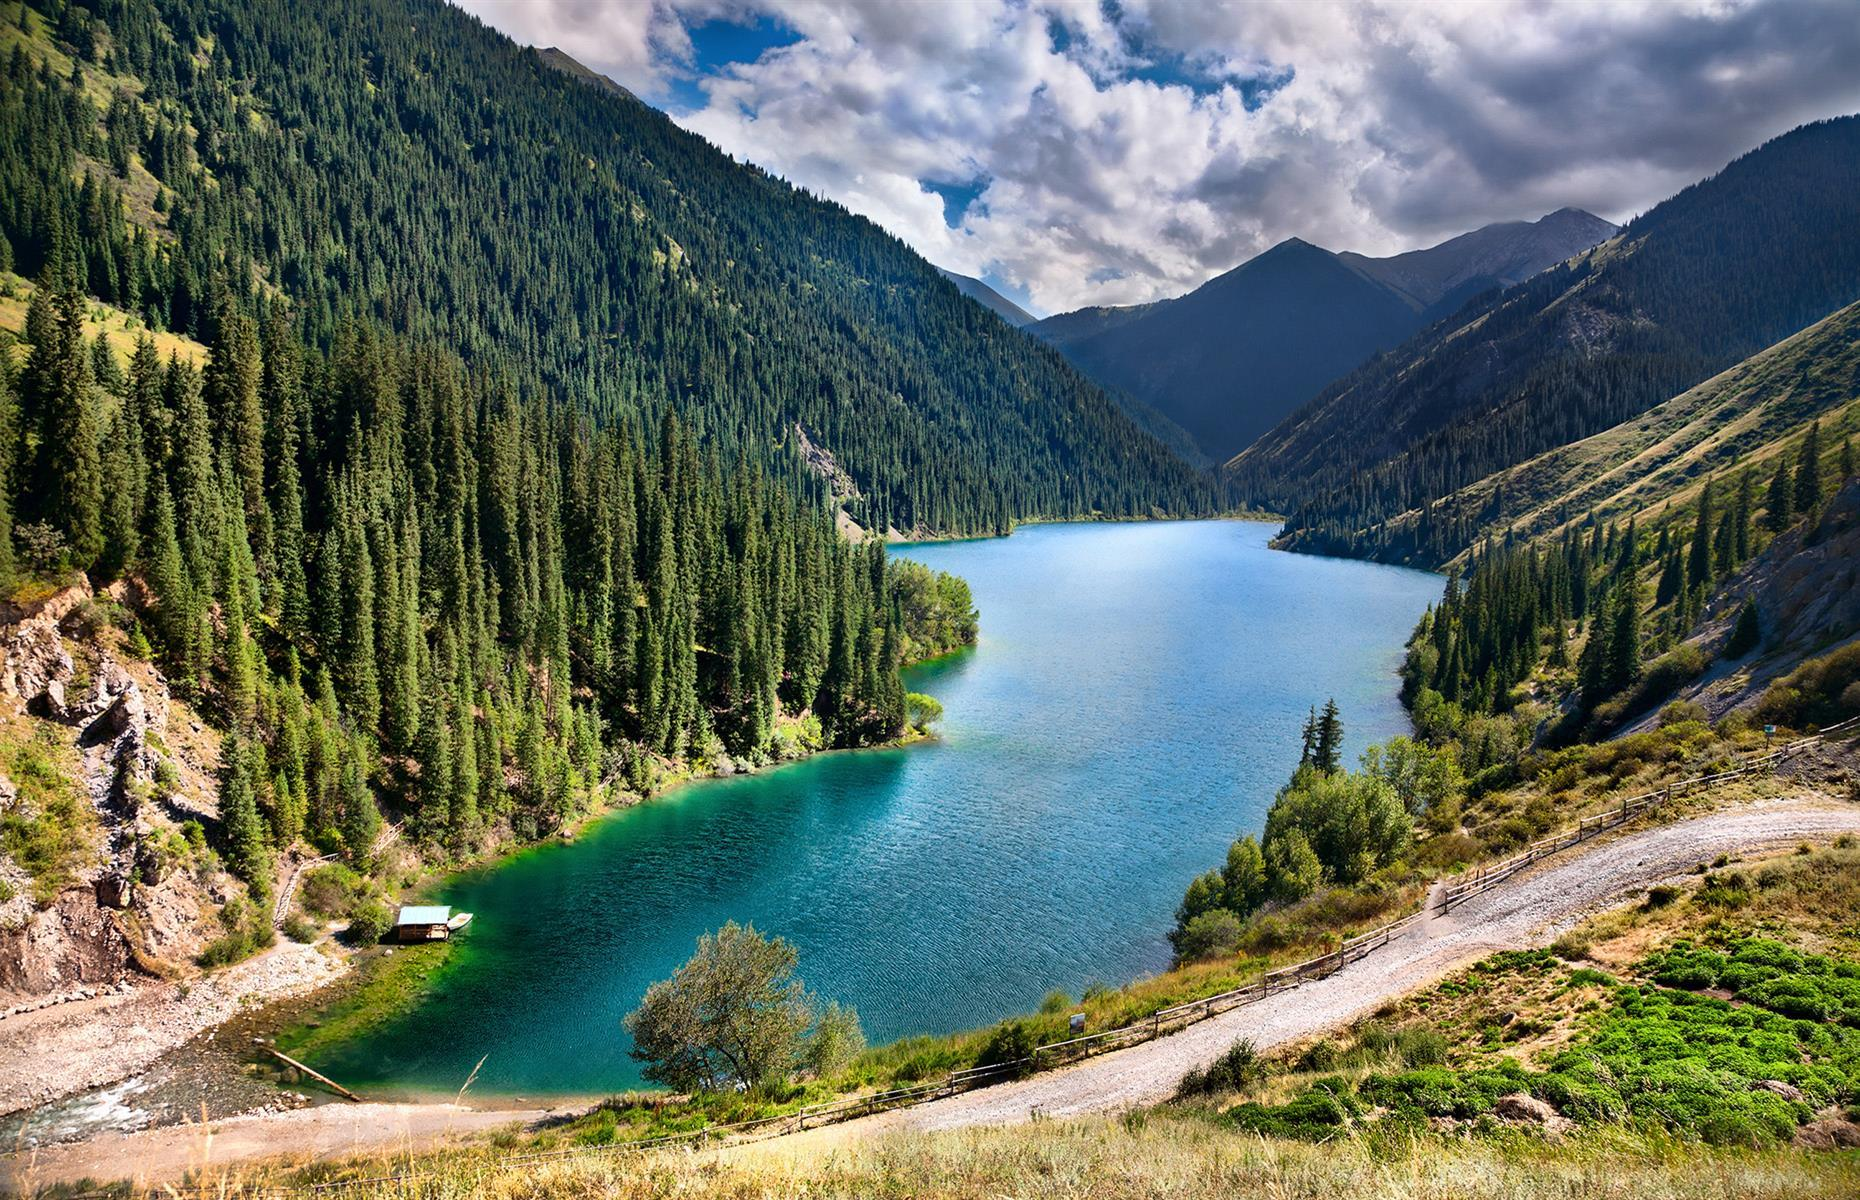 "Slide 41 of 44: Spreading out close to the Kyrgyzstan border, the wilderness here is characterized by glassy lakes, green peaks and pastures, with rivers running through thick, untouched forest. It's little wonder that the Kolsai Lakes are often dubbed the ""Pearls of Tien Shan""."